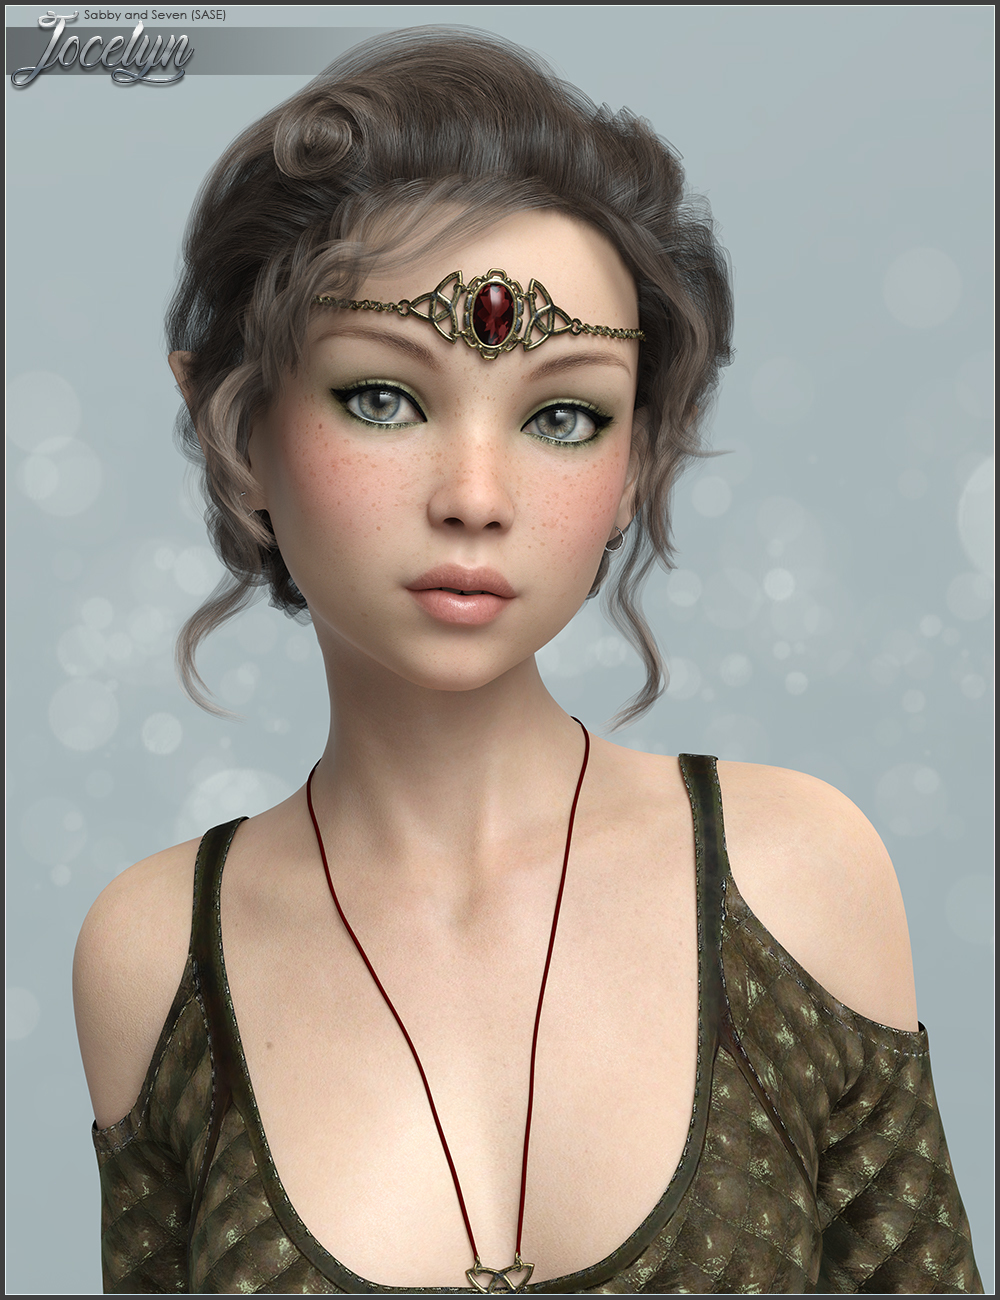 SASE Jocelyn for Genesis 8